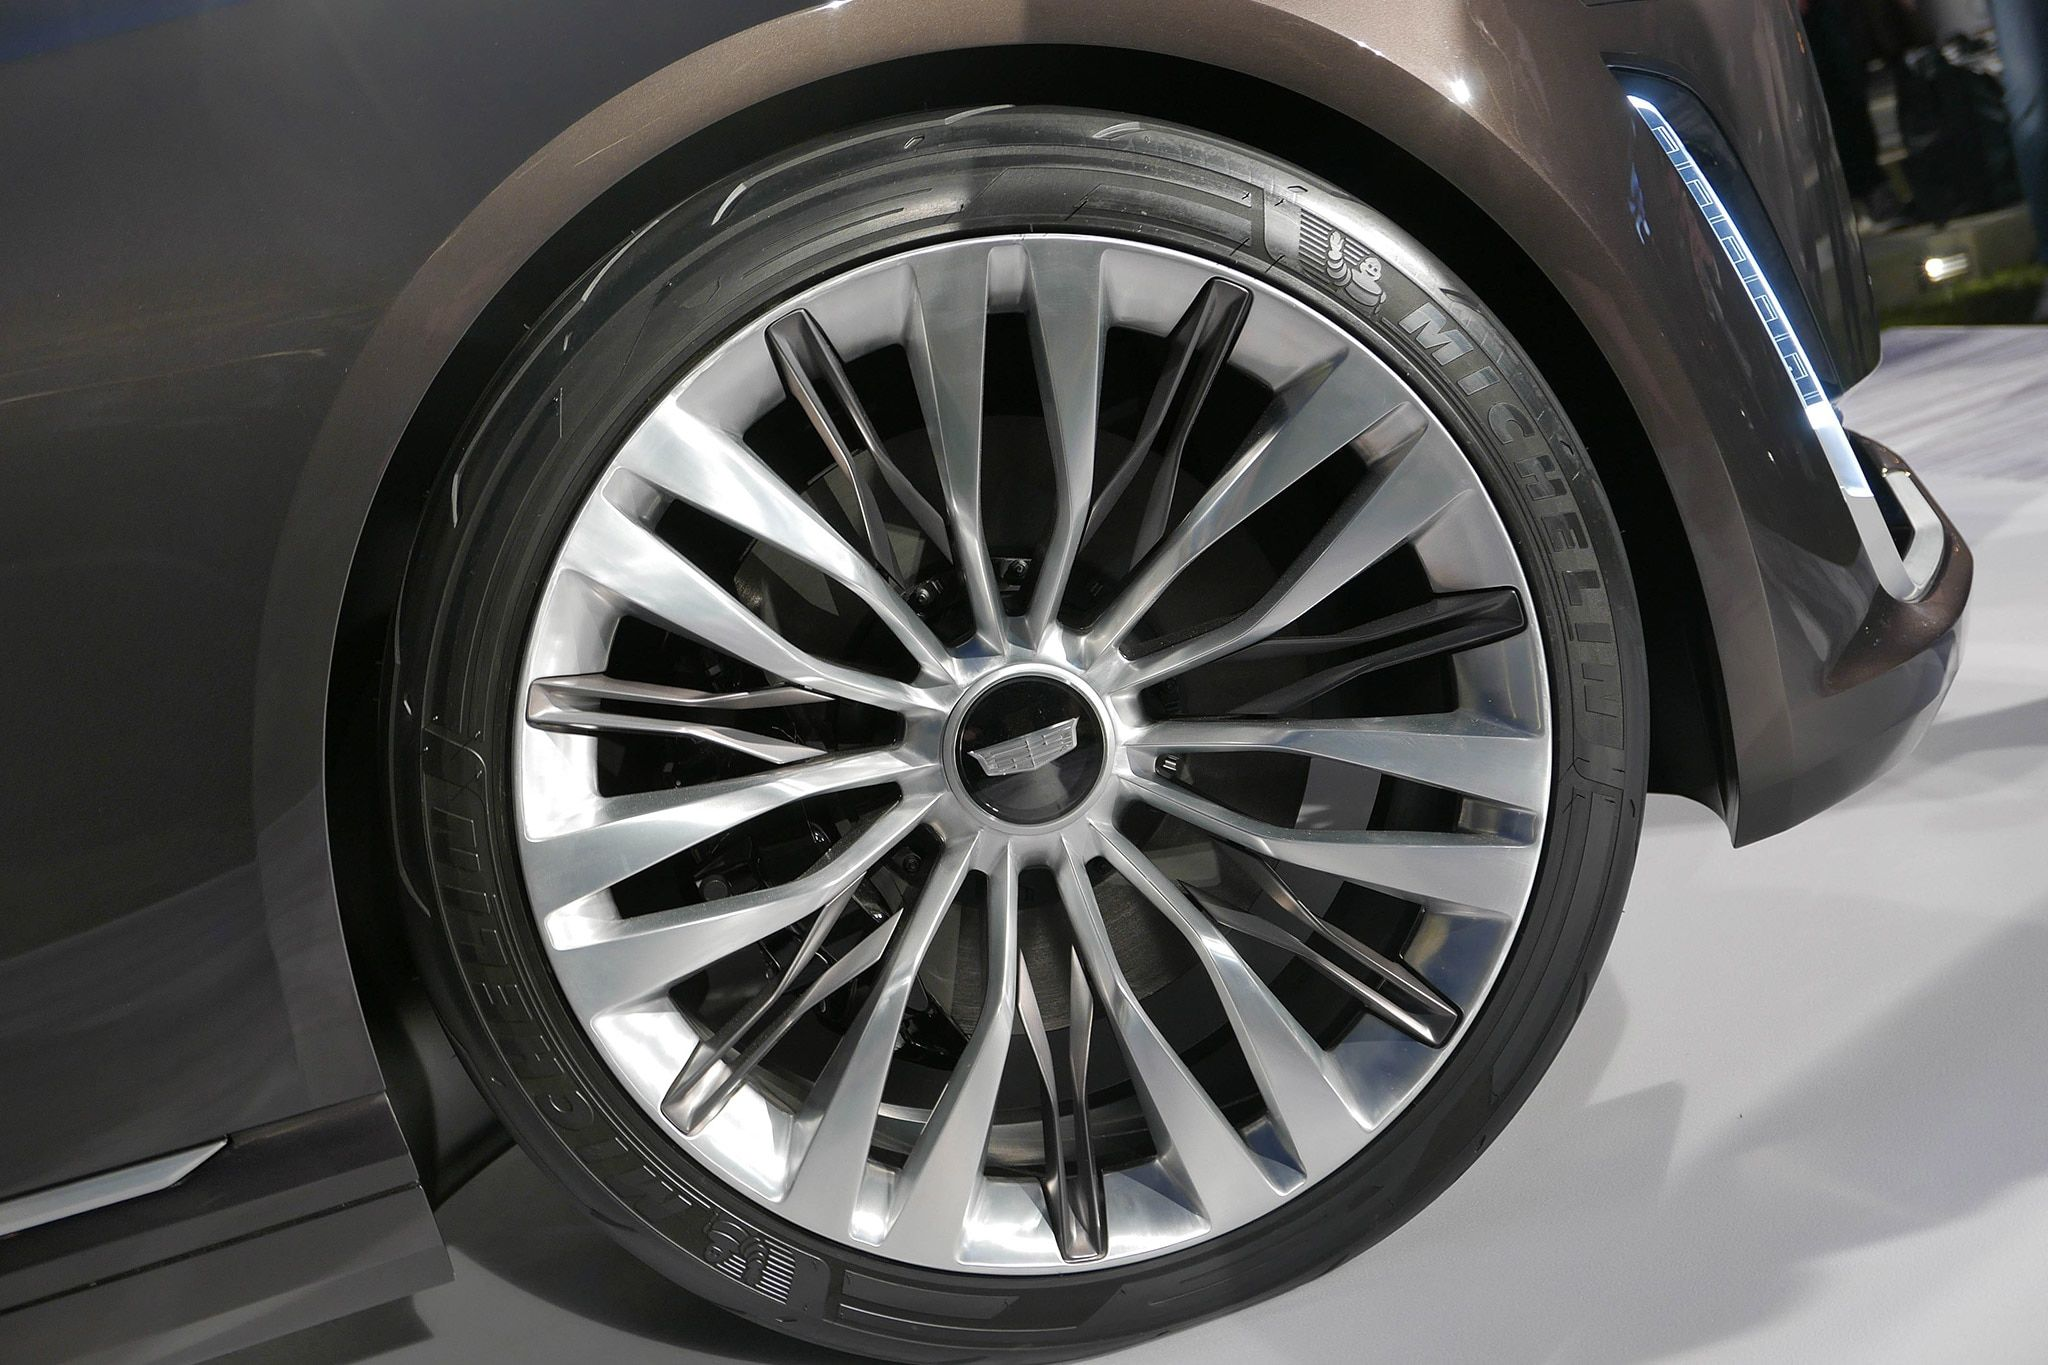 wheel deville cadillac factory for sale rim page used original wheels catalog hubcaps and